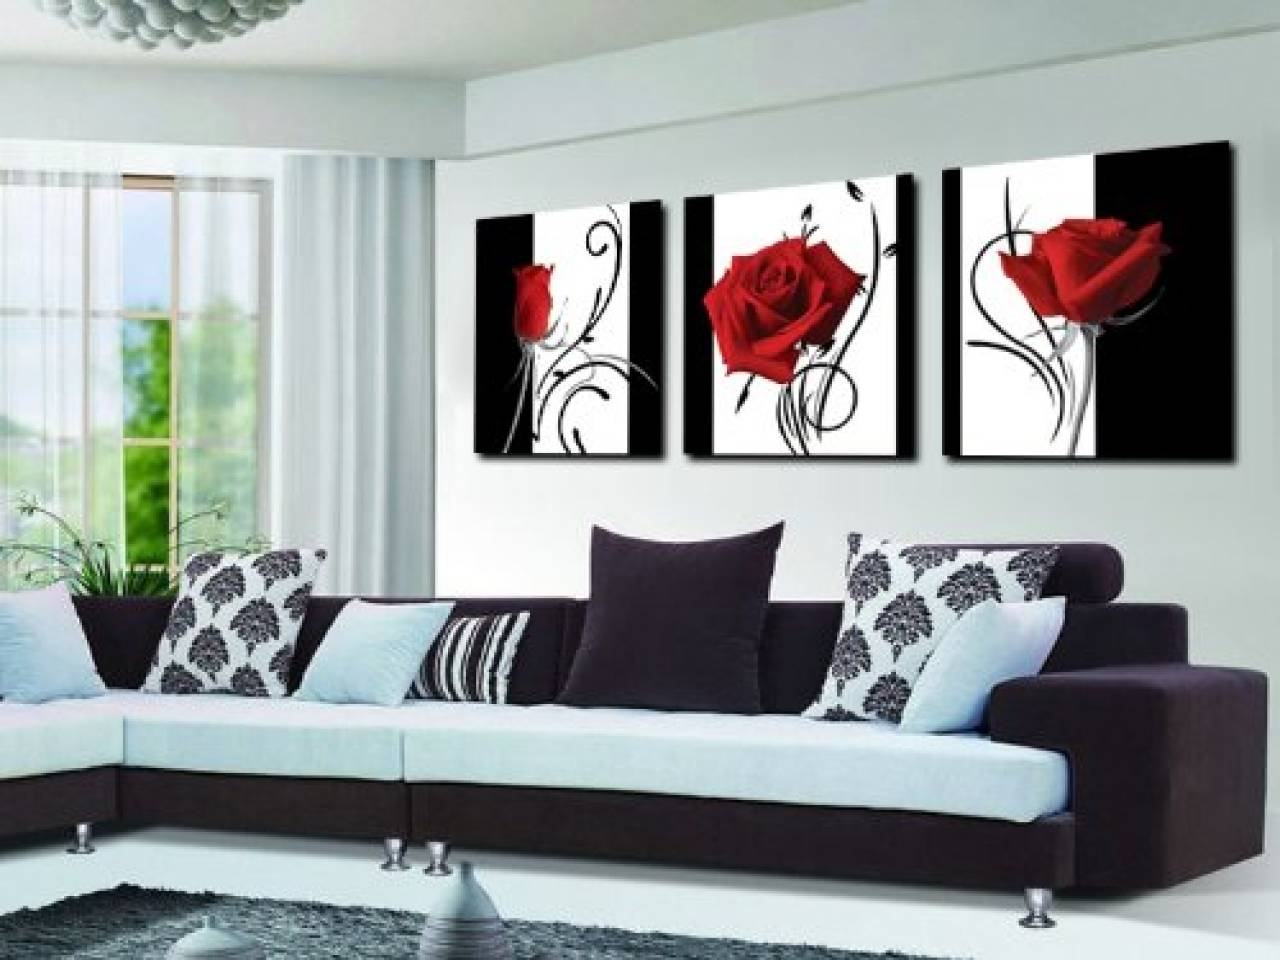 Modern White And Silver Kitchens, Red Black White Canvas Wall Art Throughout Best And Newest Black And White Wall Art With Red (View 15 of 25)